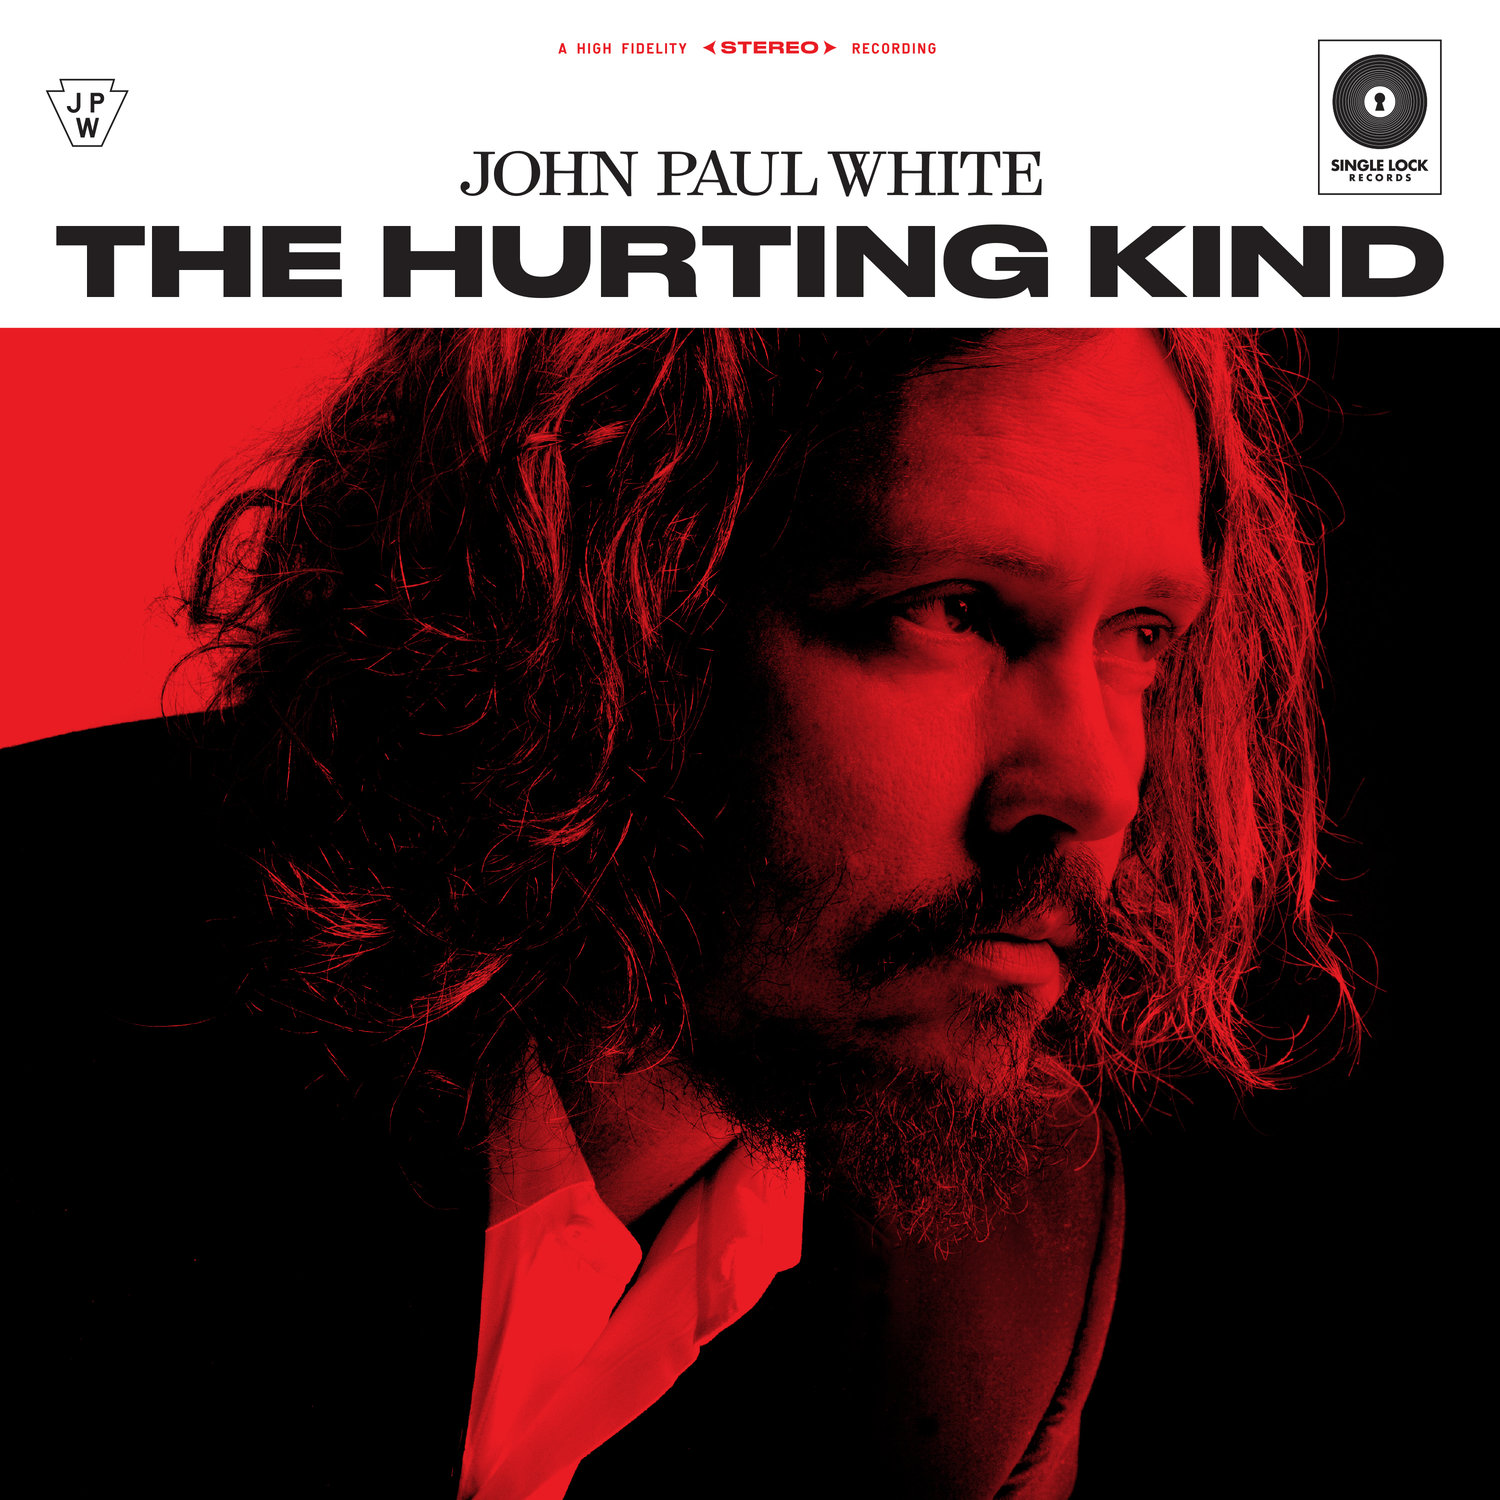 """The Hurting Kind"" - the new record from John Paul White"